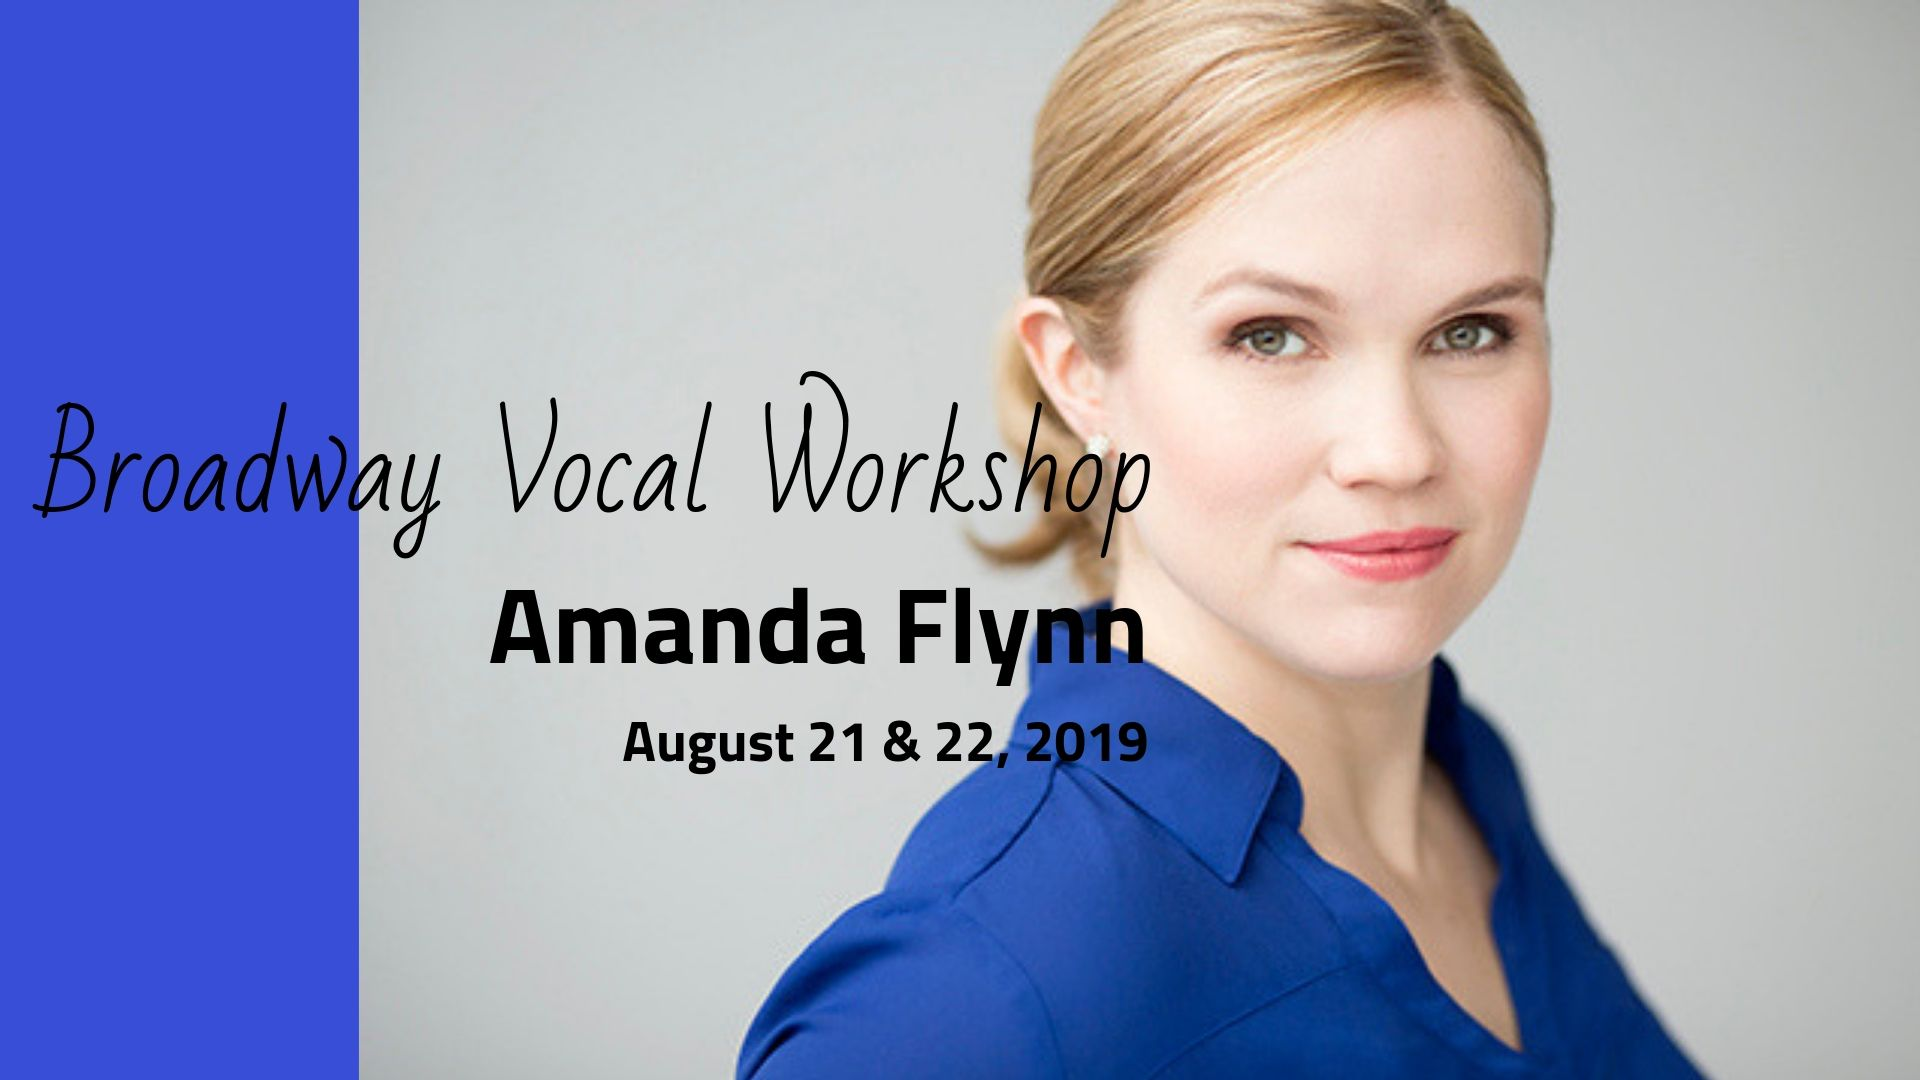 BroadwayVocal Workshop-4.jpg